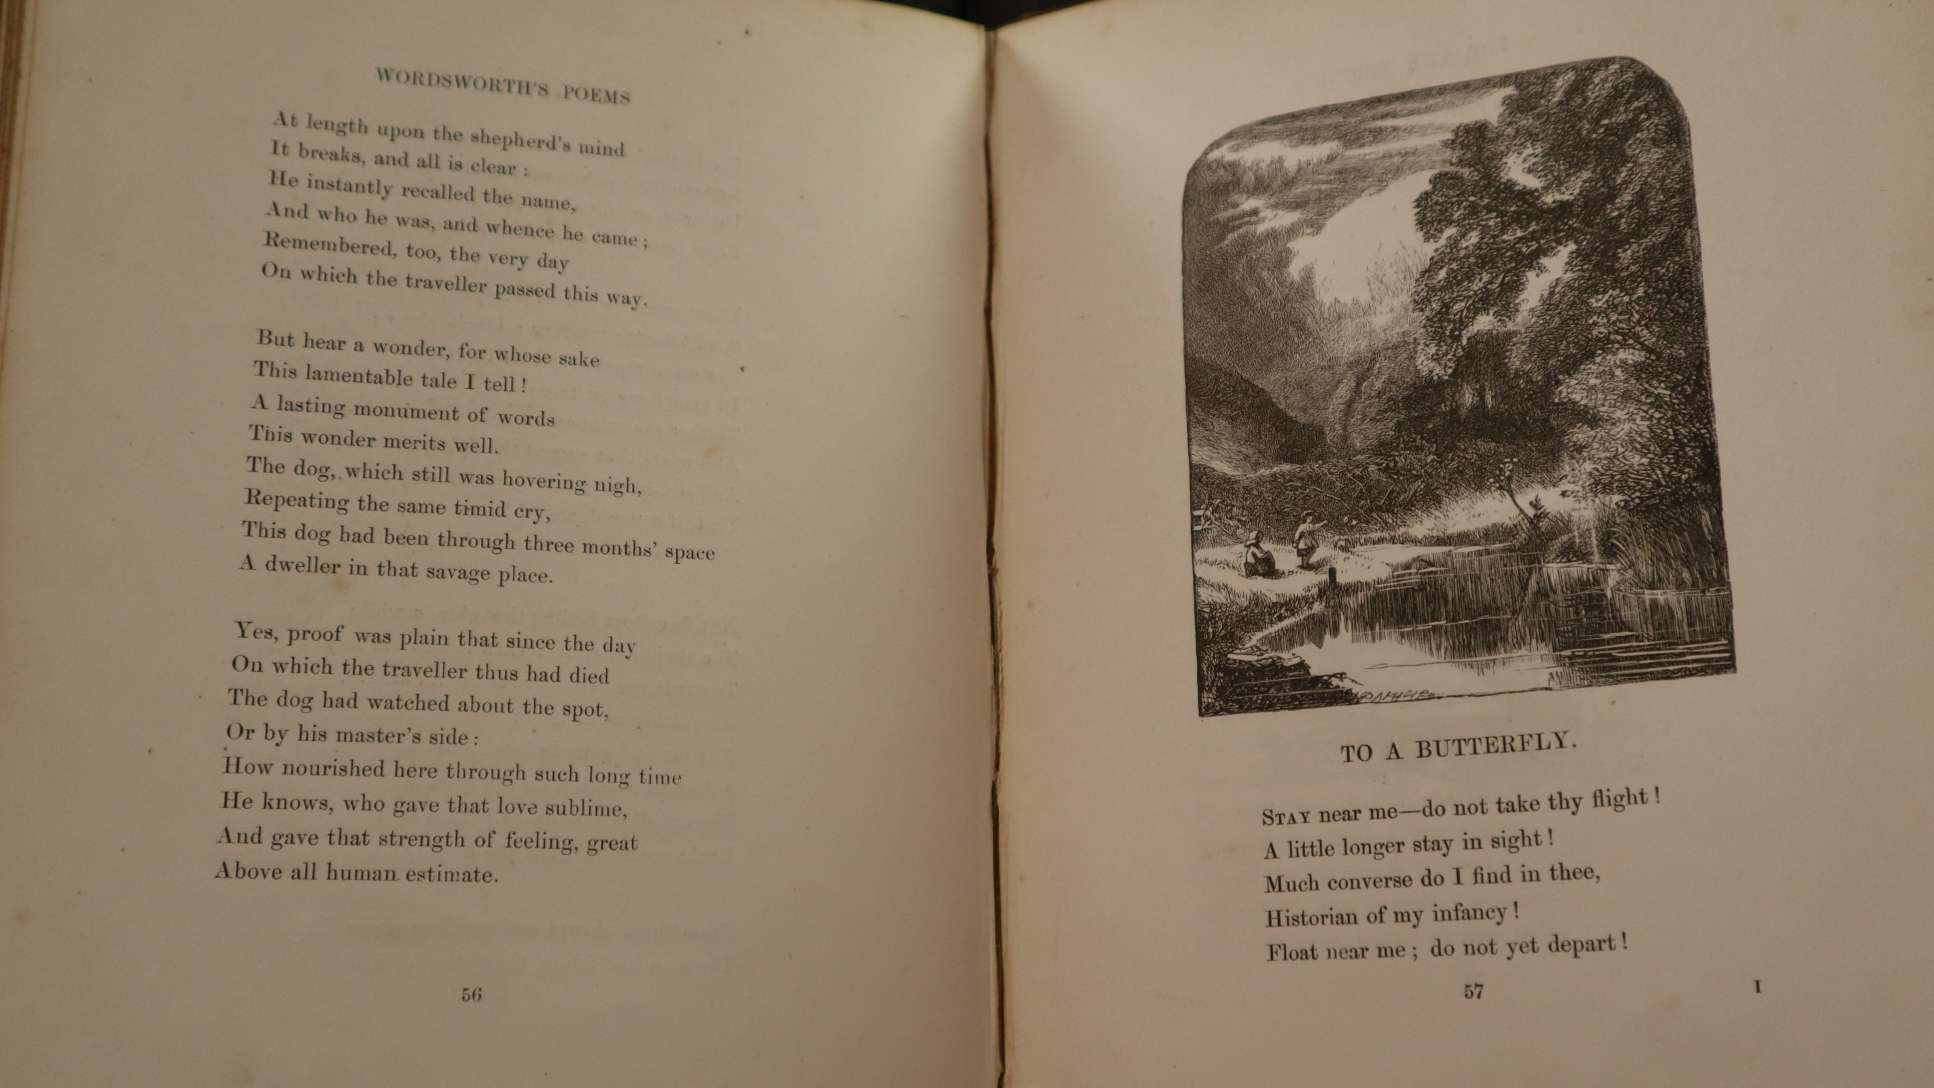 To a Butterfly by William Wordsworth